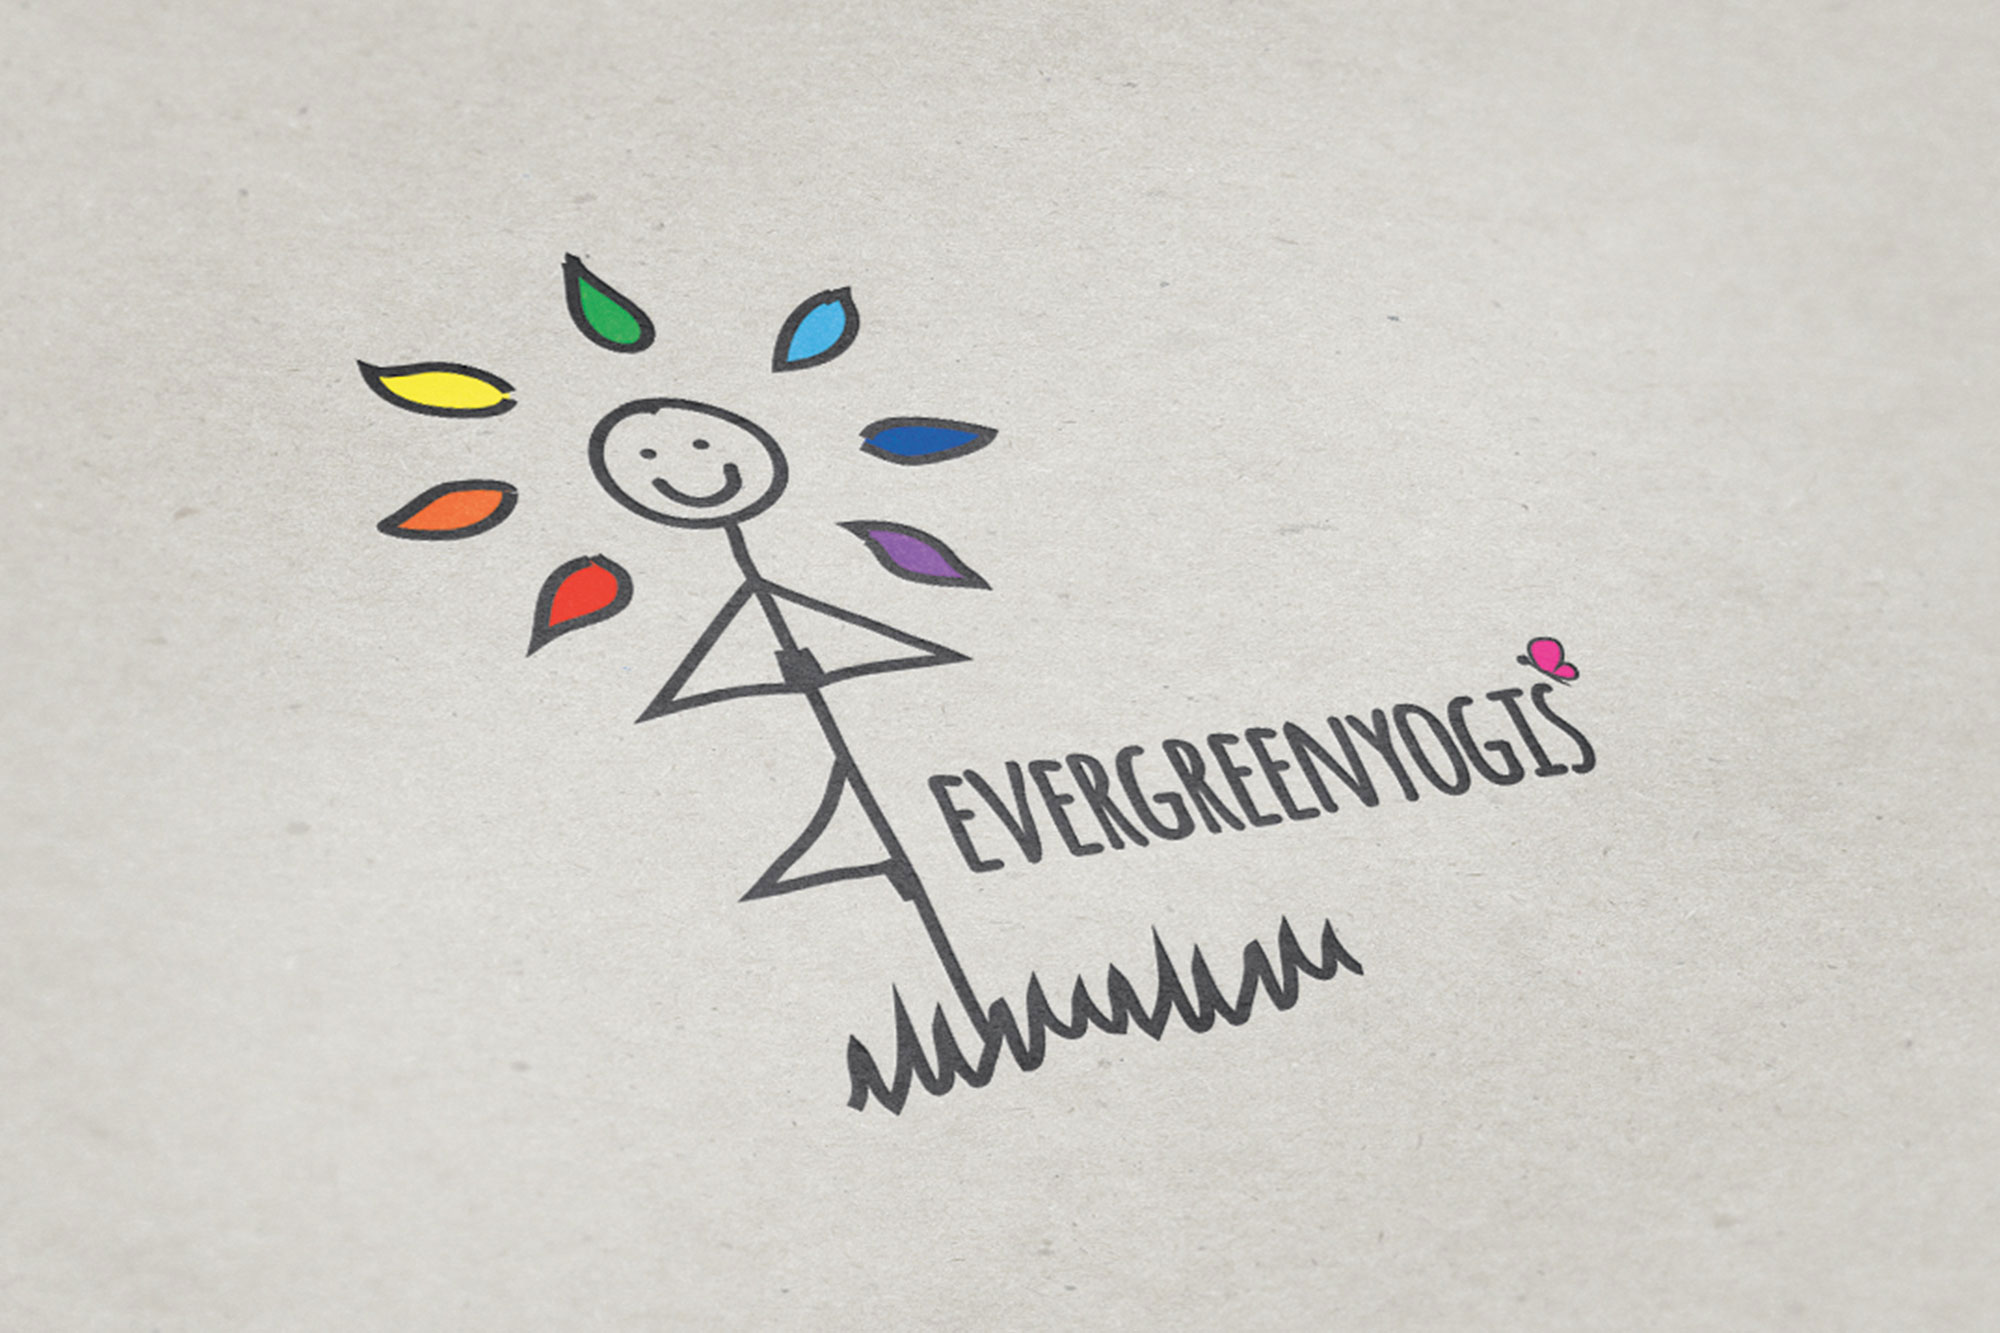 Evergreenyogis Logo